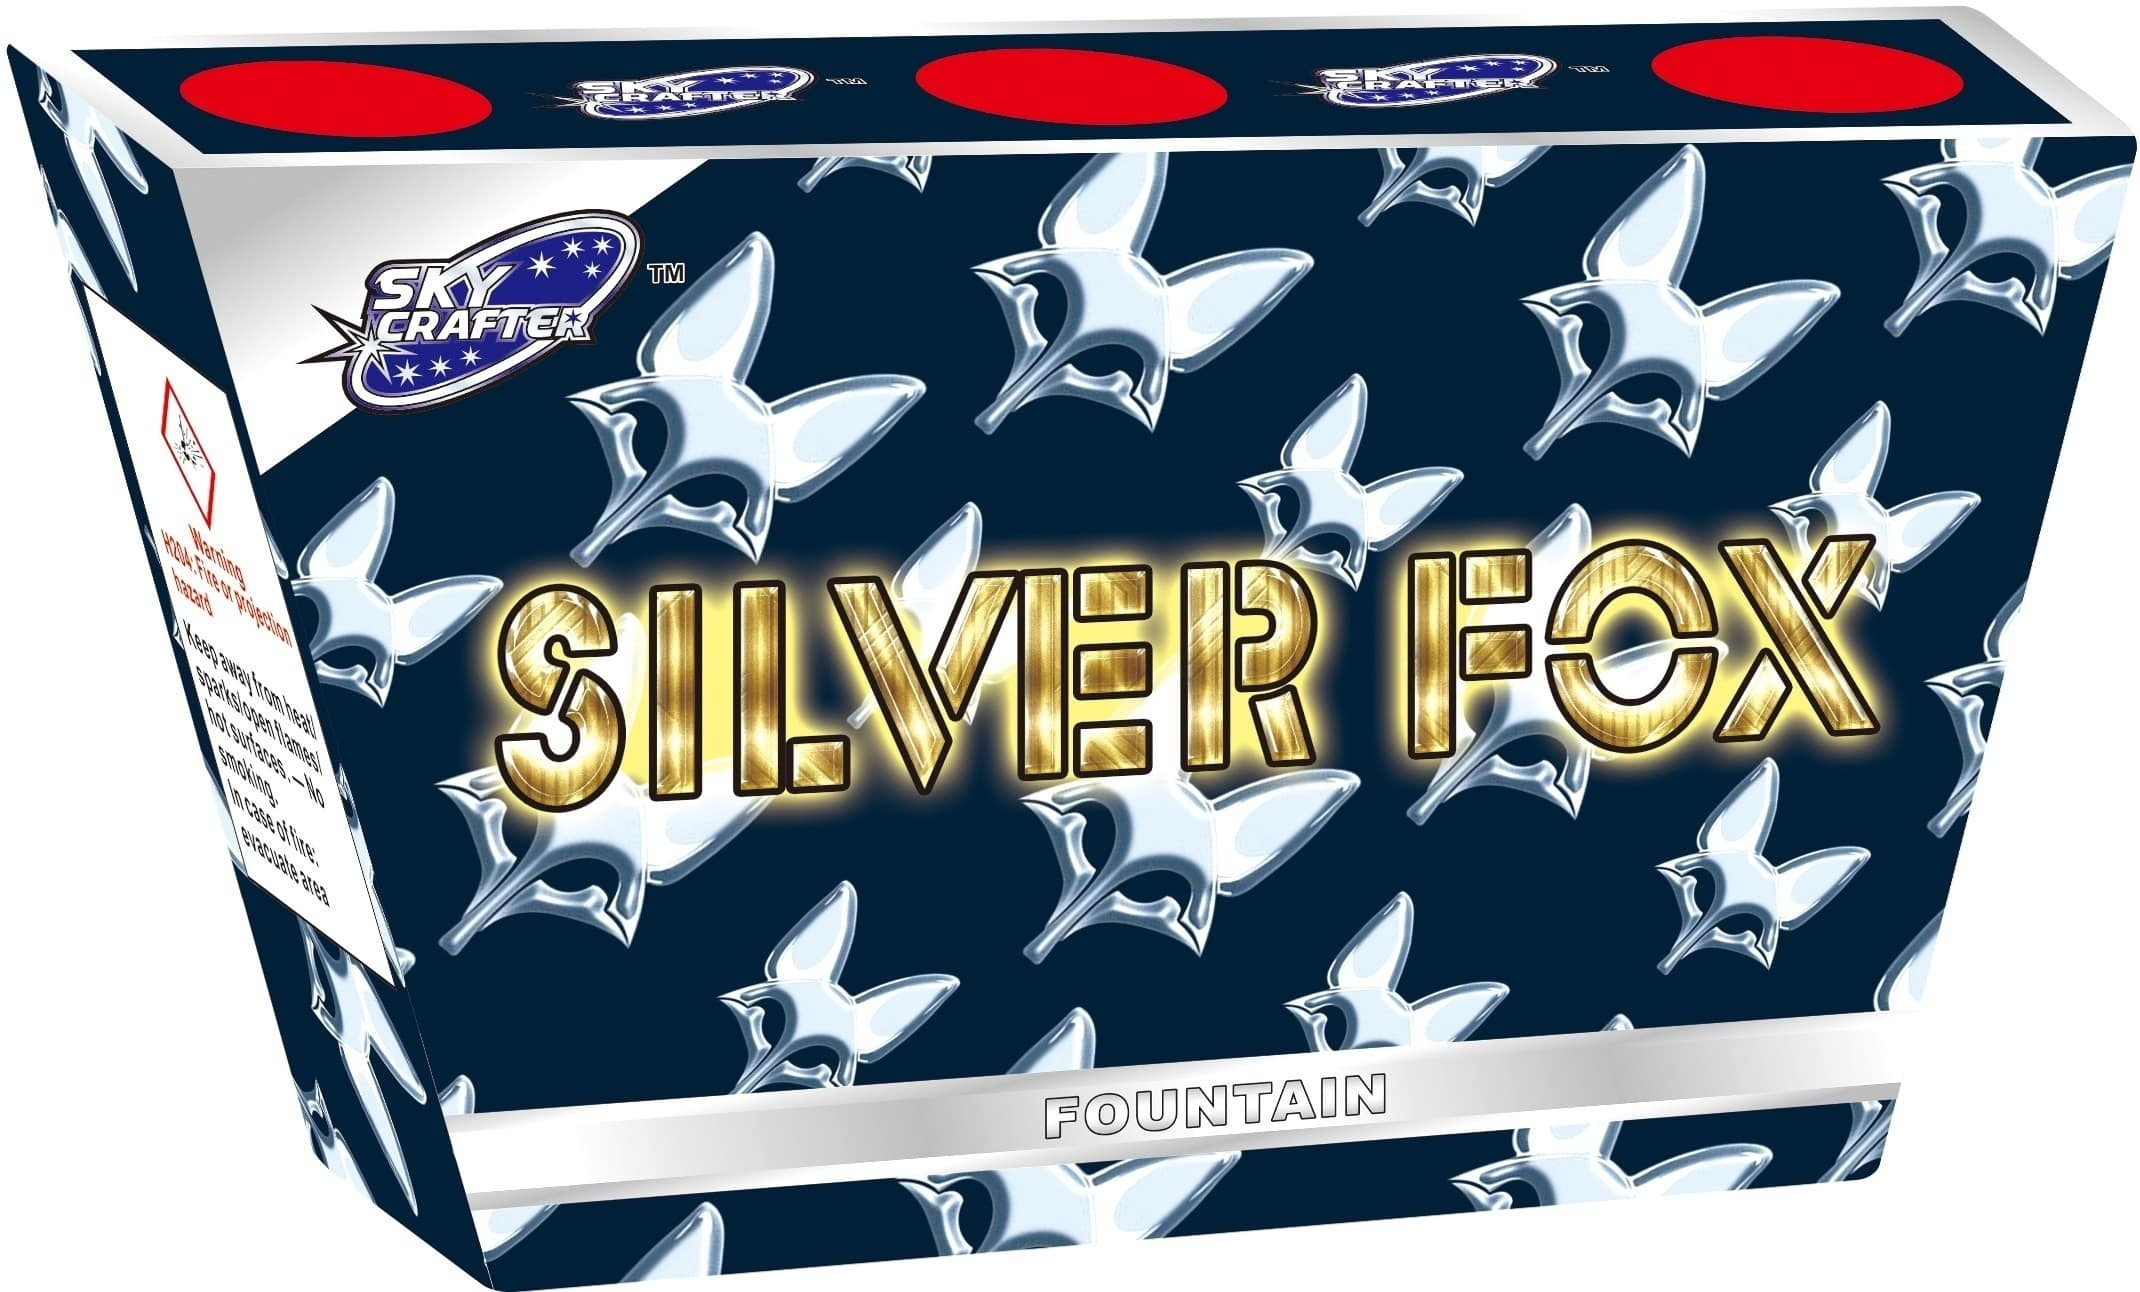 Silver Fox By Skycrafter Fireworks